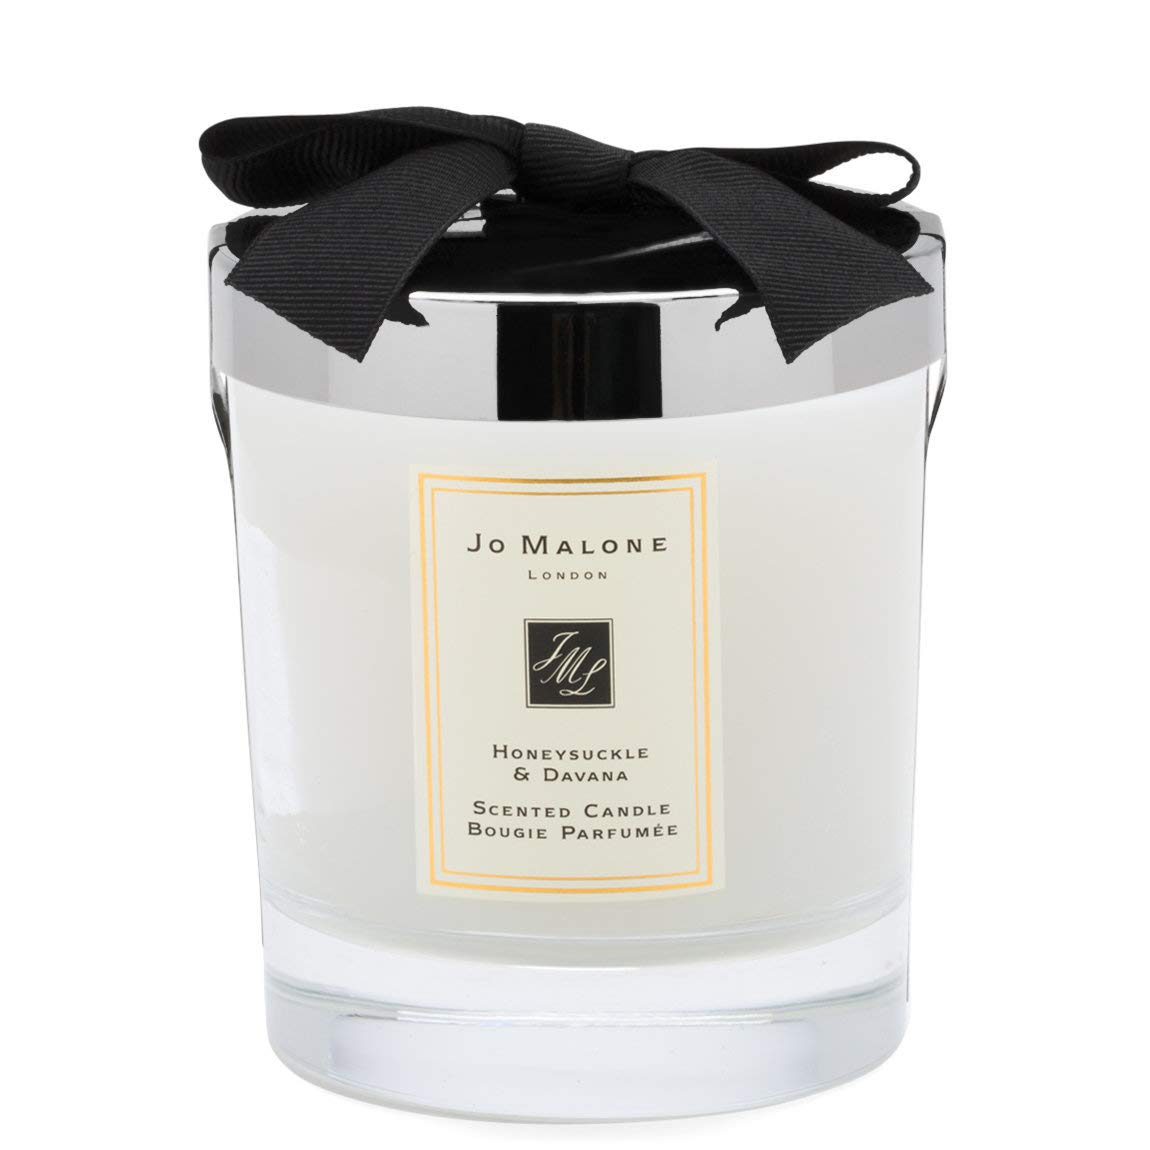 Jo Malone Honeysuckle & Davana Scented Candle - (2.5 inch / 200g)